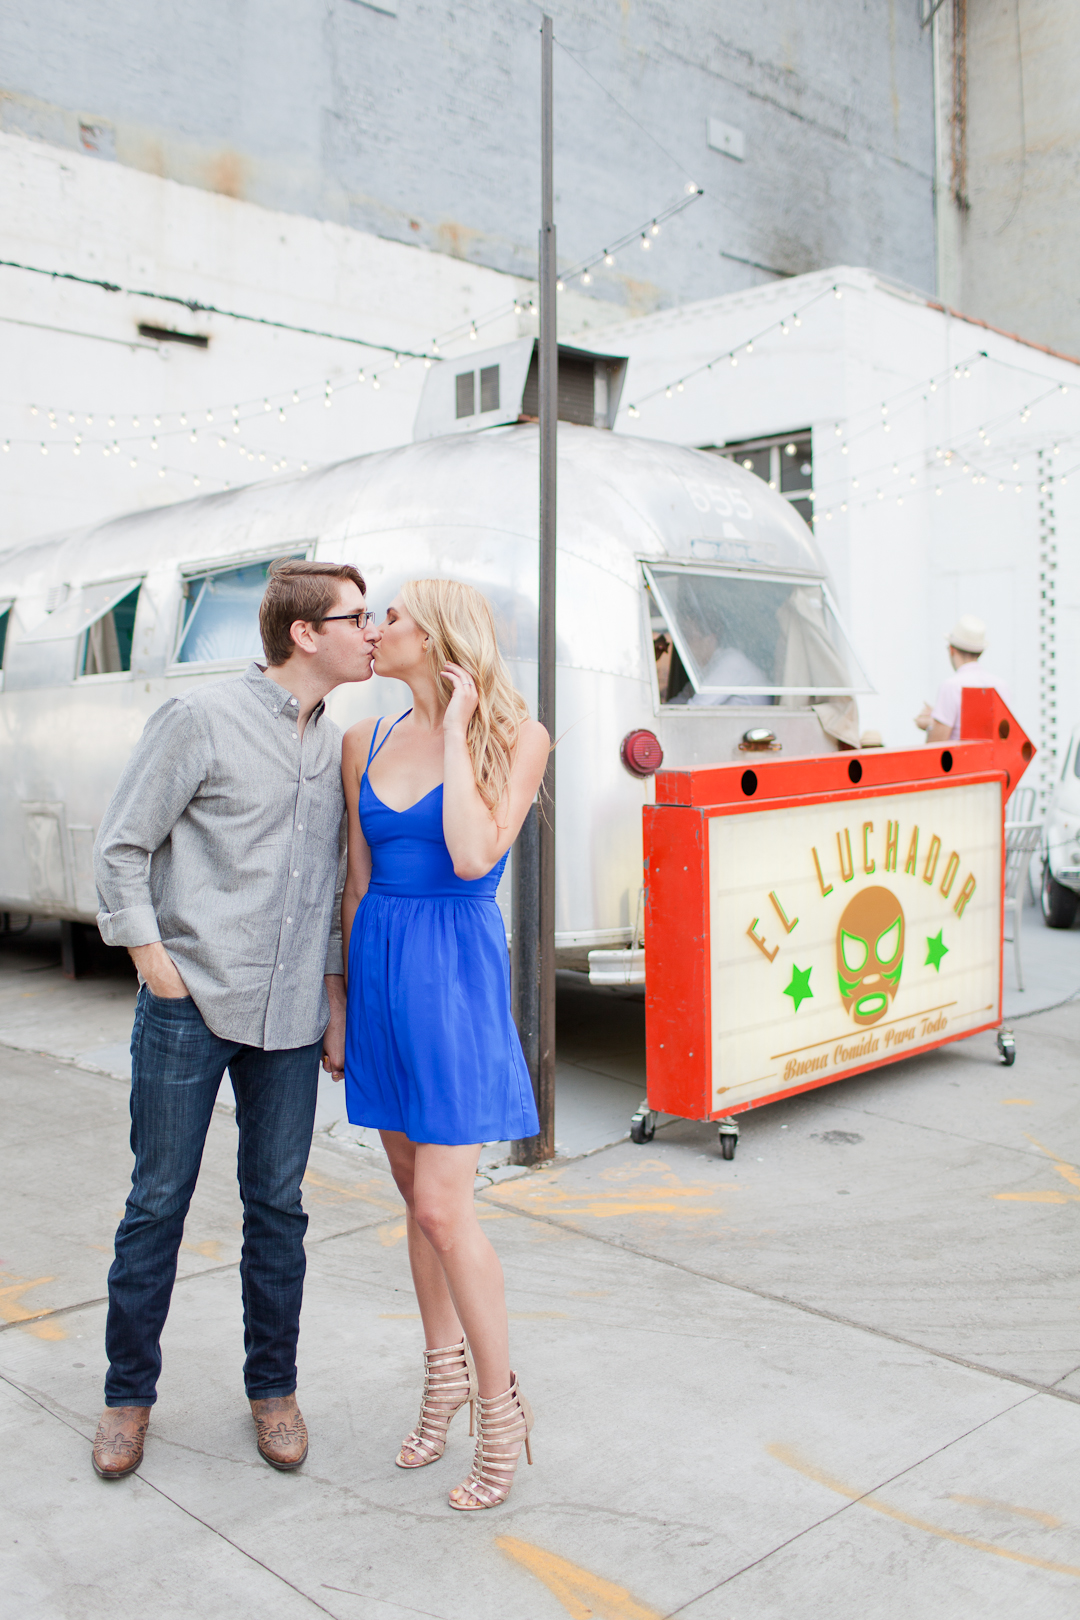 Melissa Kruse Photography - Kelley & Billy Engagement Photos-68.jpg